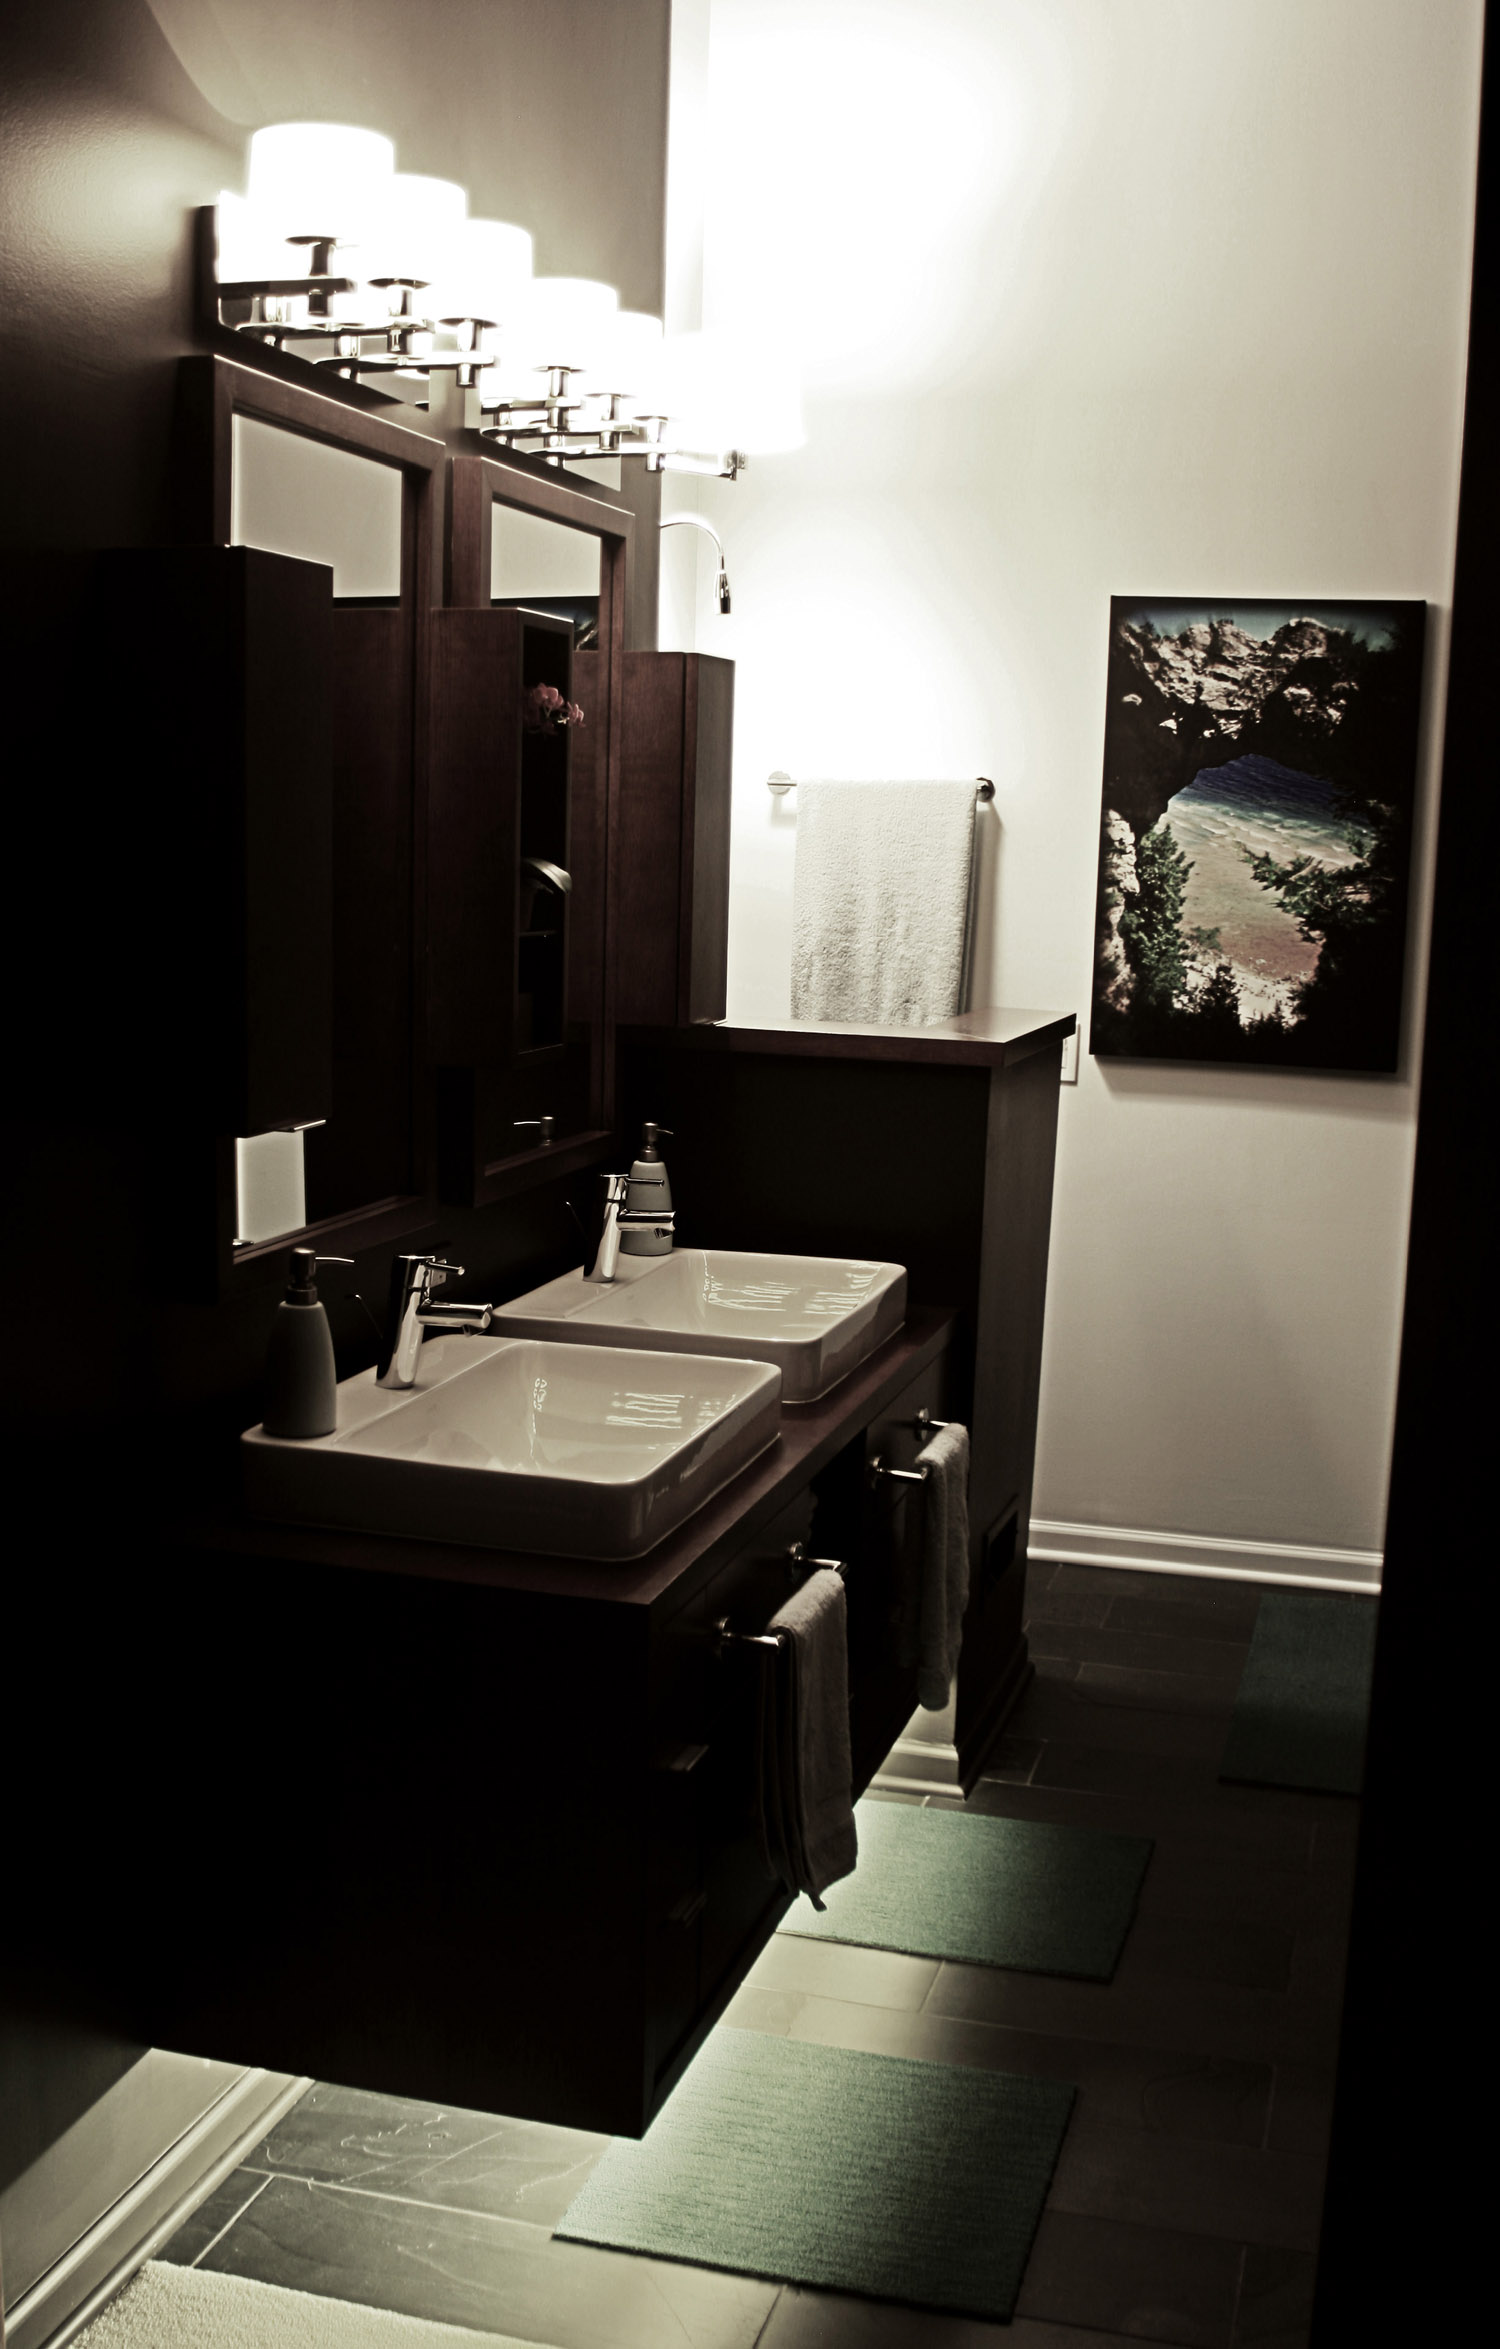 6 masterbath entry view of wall mount vanity night.jpg